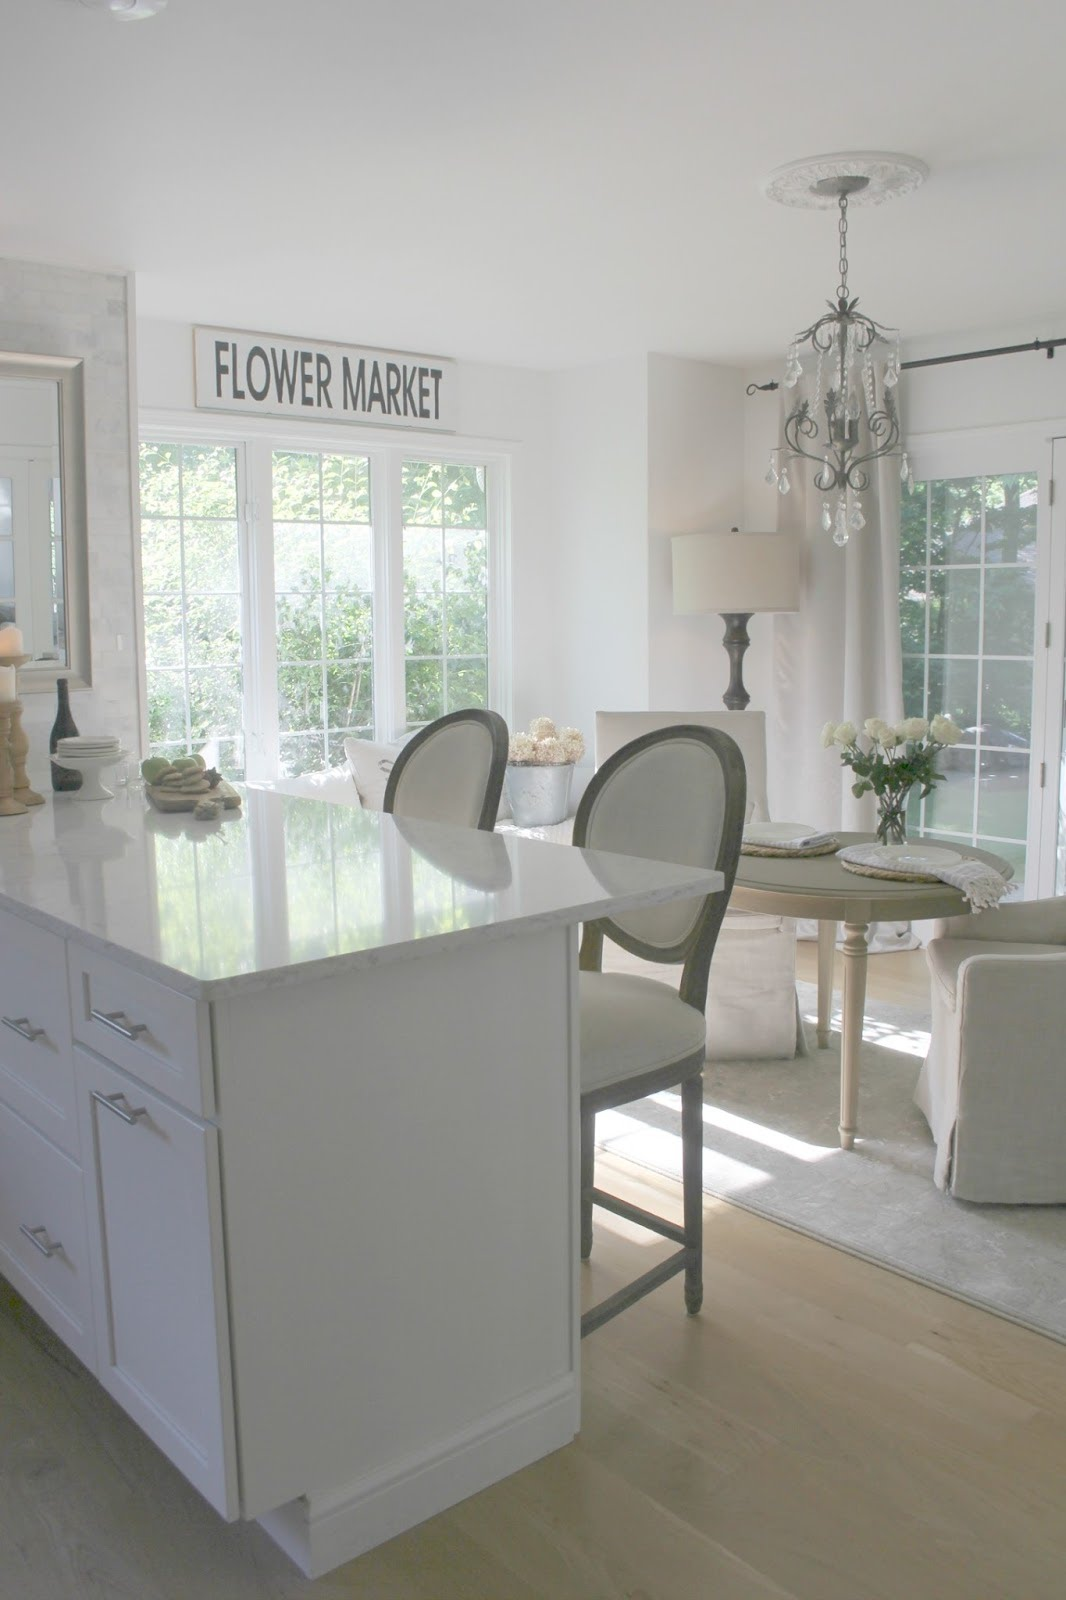 Serene French Country kitchen decor with white quartz counter, linen upholstered bar stools, Flower Market sign, and crystal chandelier. Design by Hello Lovely Studio. #kitchendecor #kitchendesign #whitekitchen #frenchcountry #serene #elegantdecor #hellolovelystudio